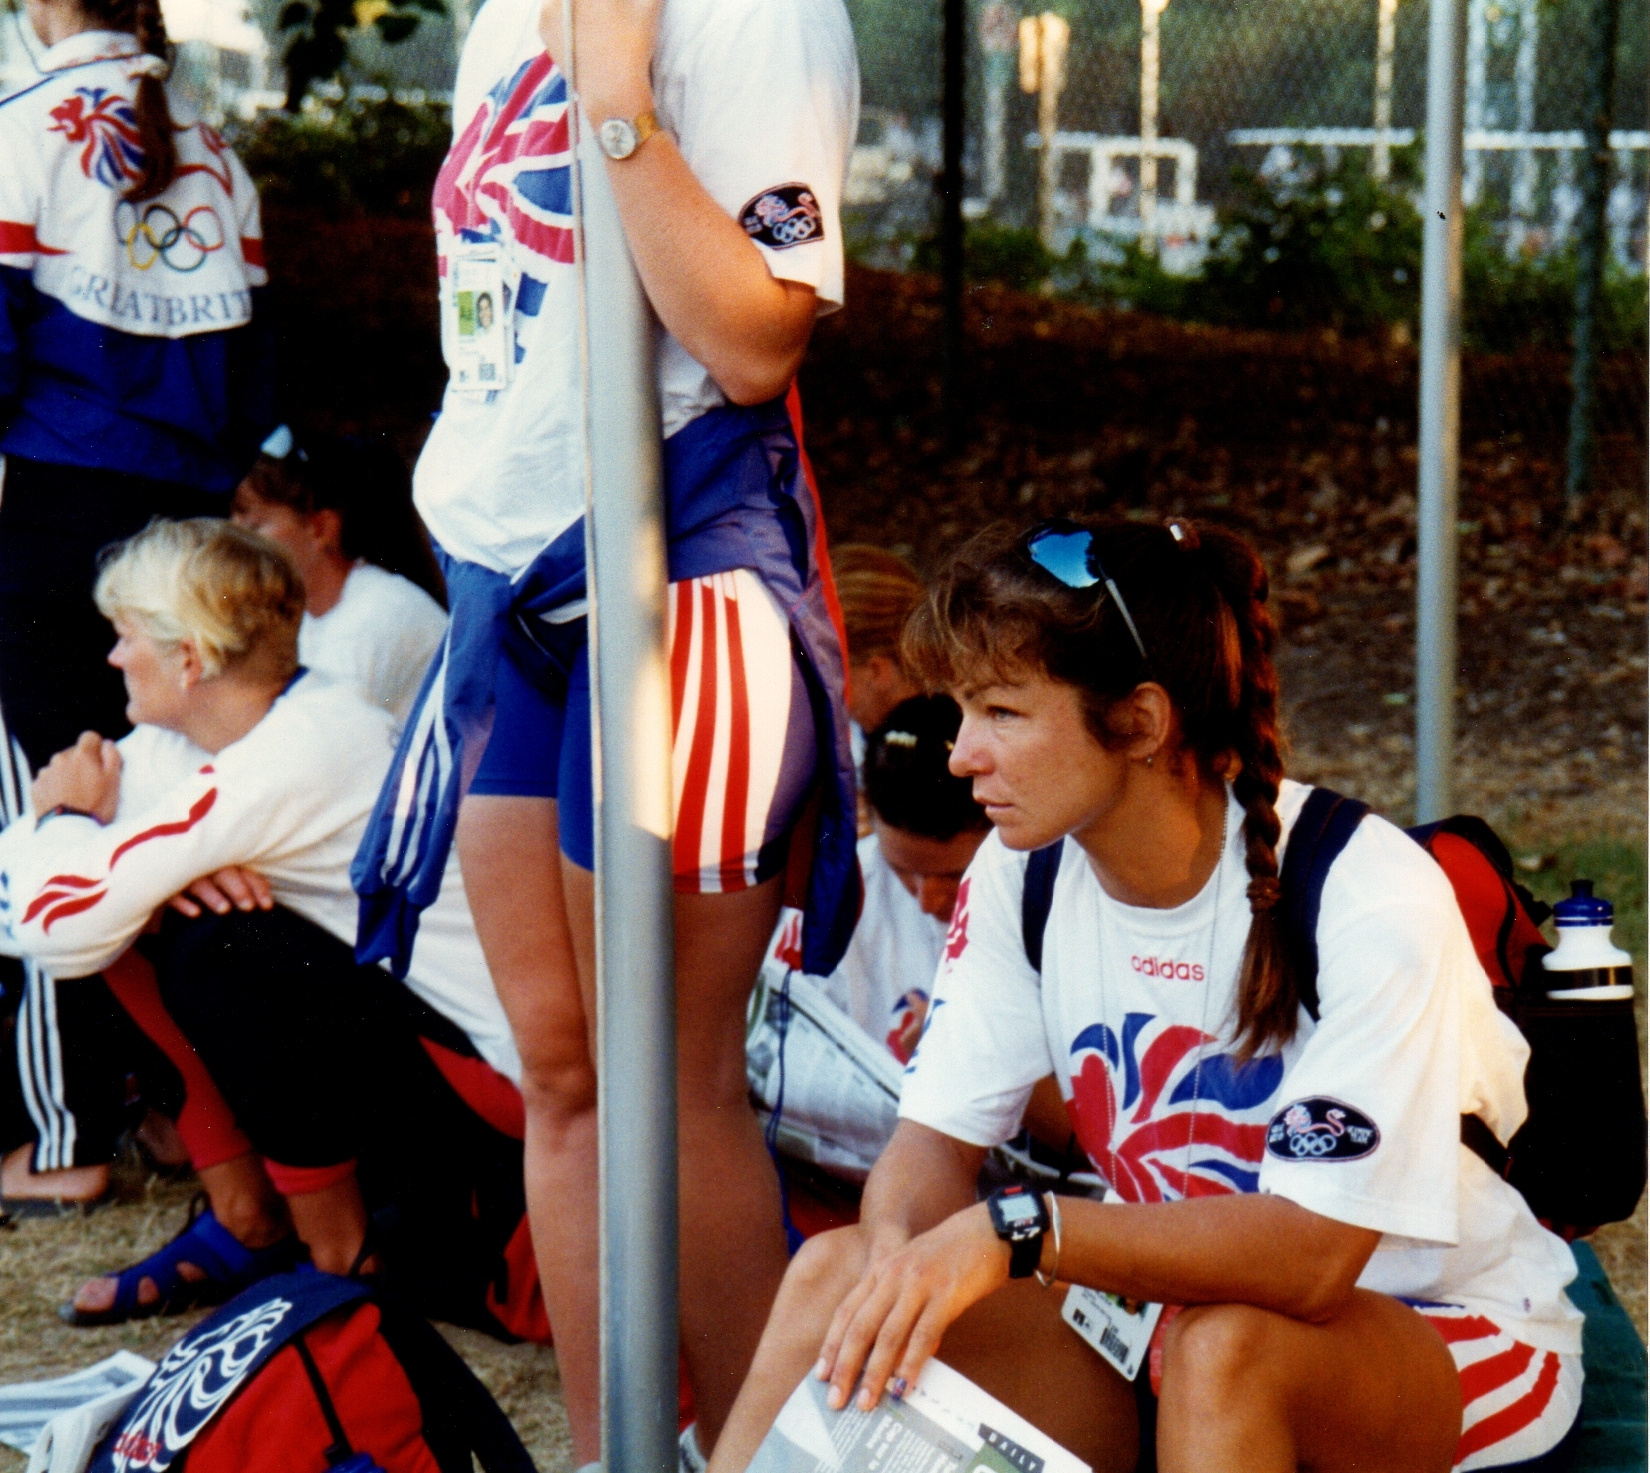 Frustrated GB rowers waiting for bus